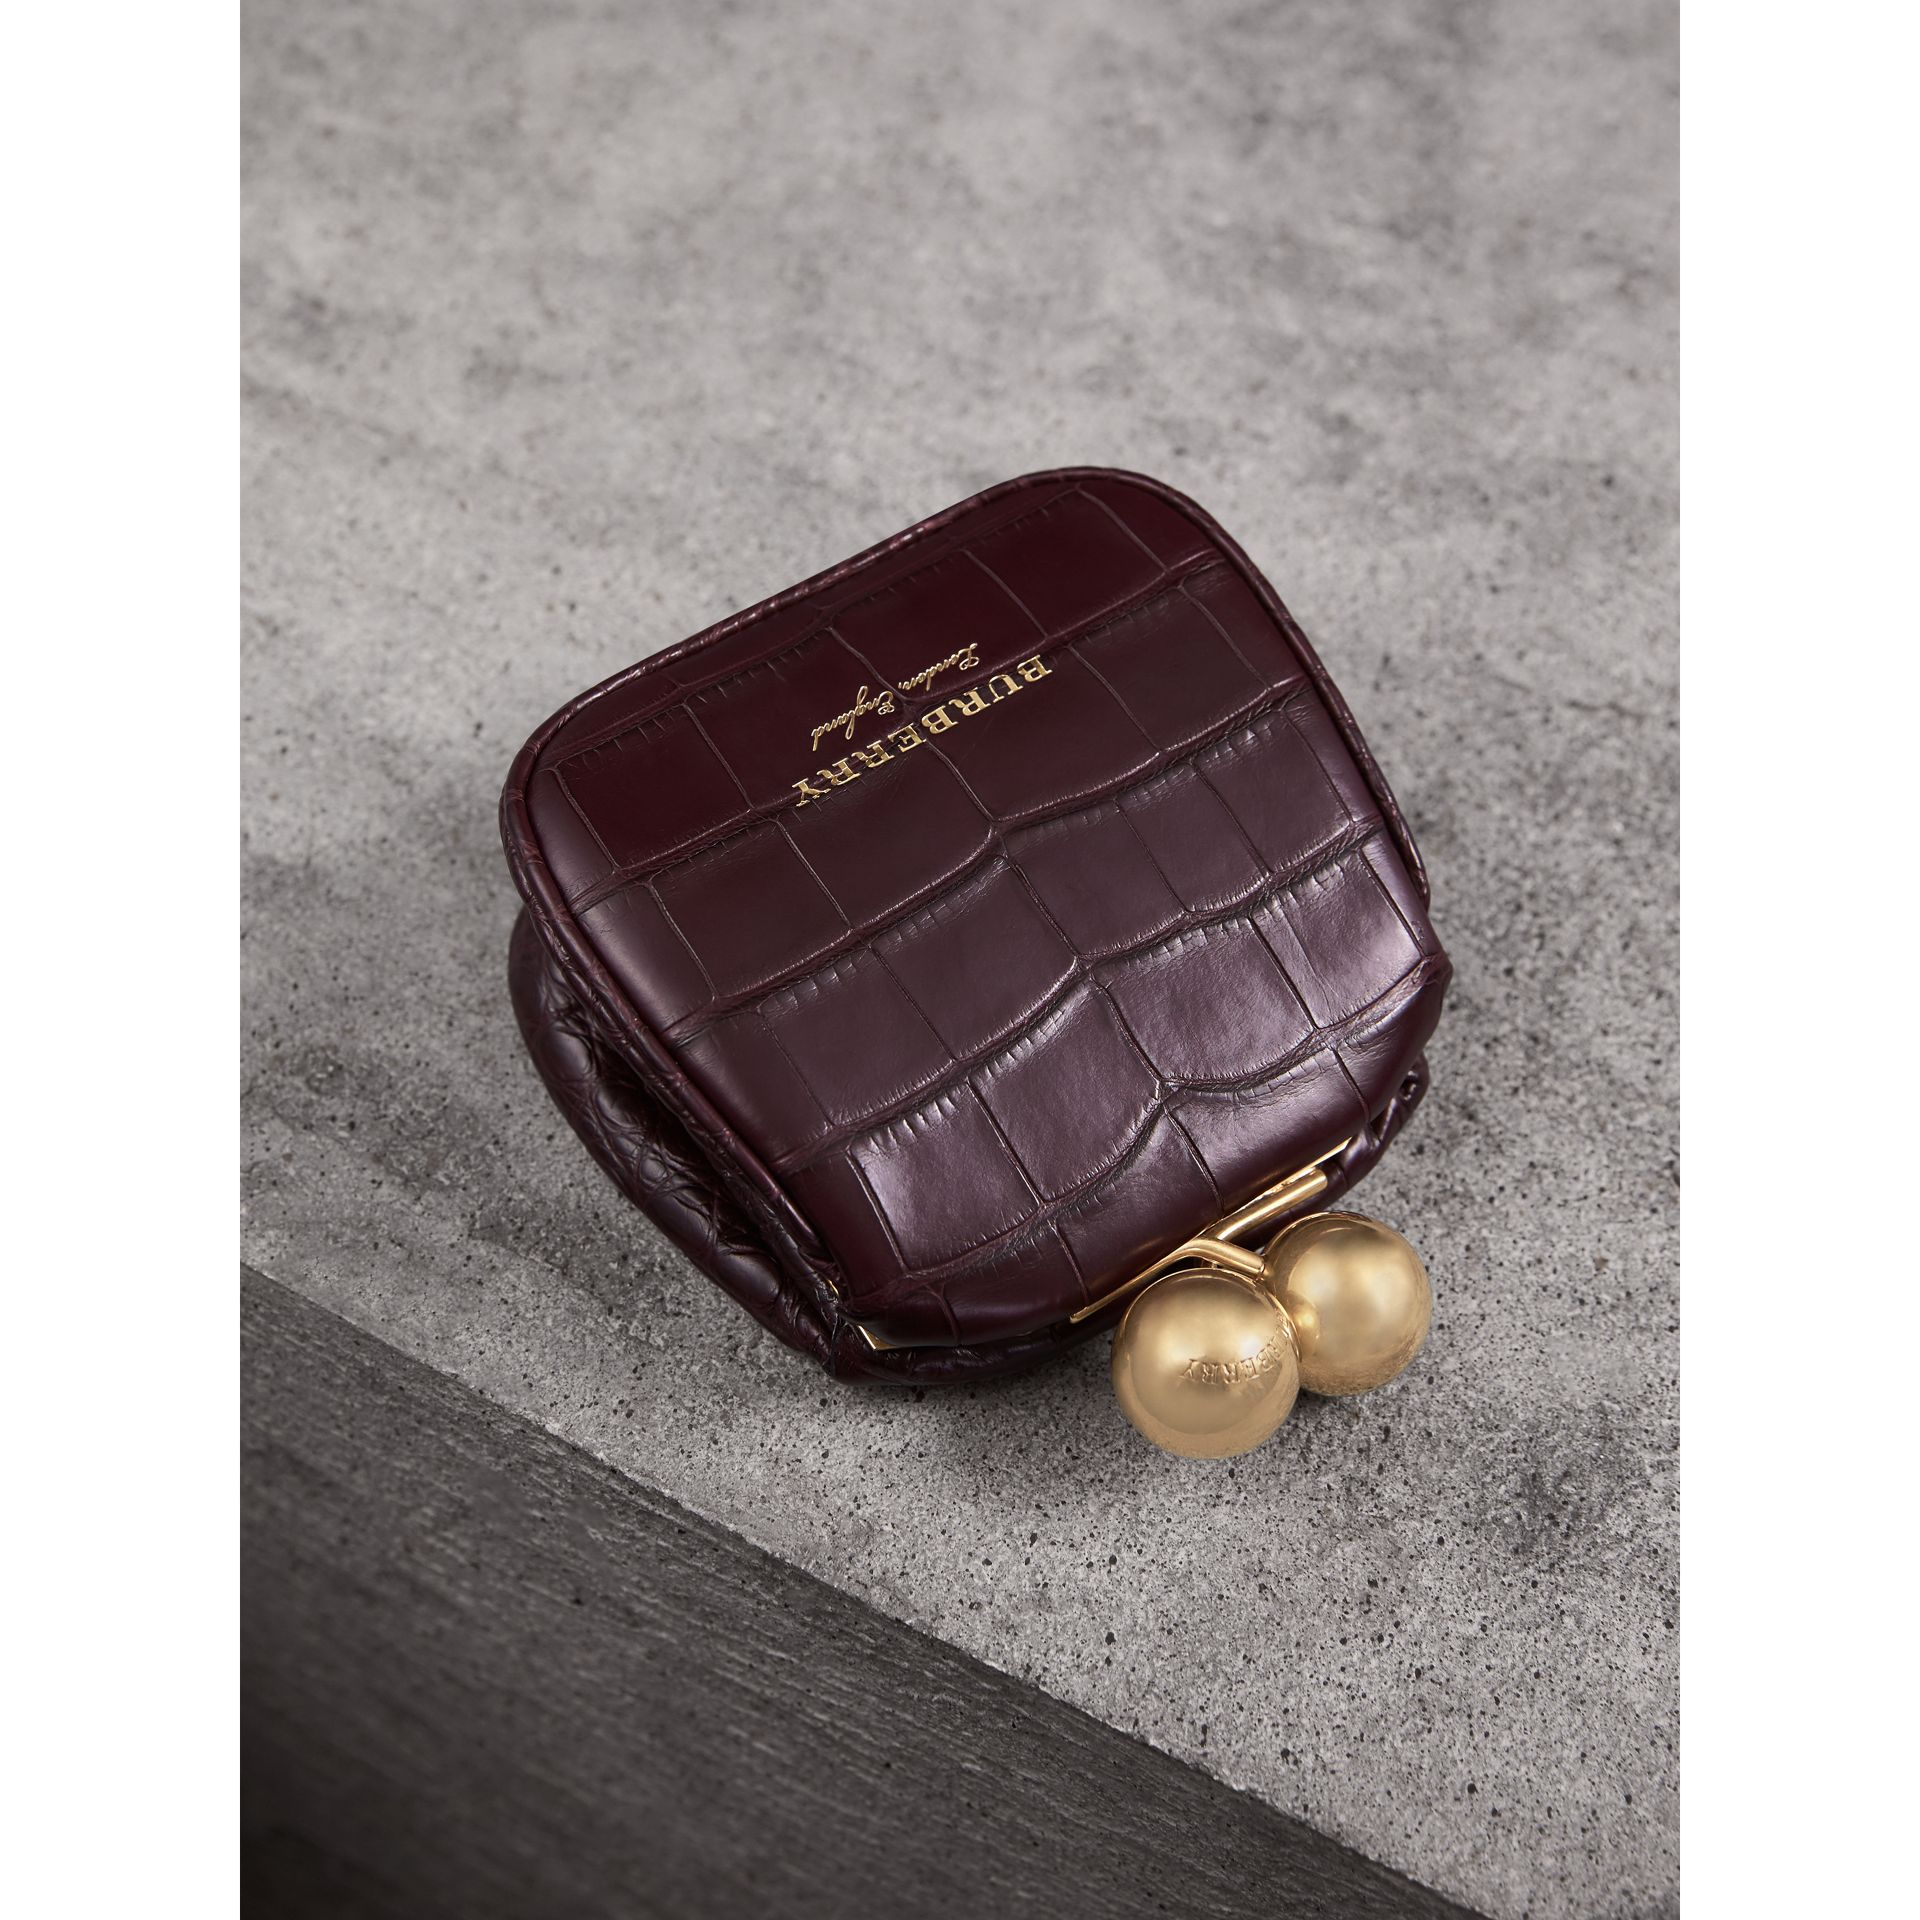 Mini Alligator Metal Frame Clutch Bag in Dark Claret - Women | Burberry - gallery image 3